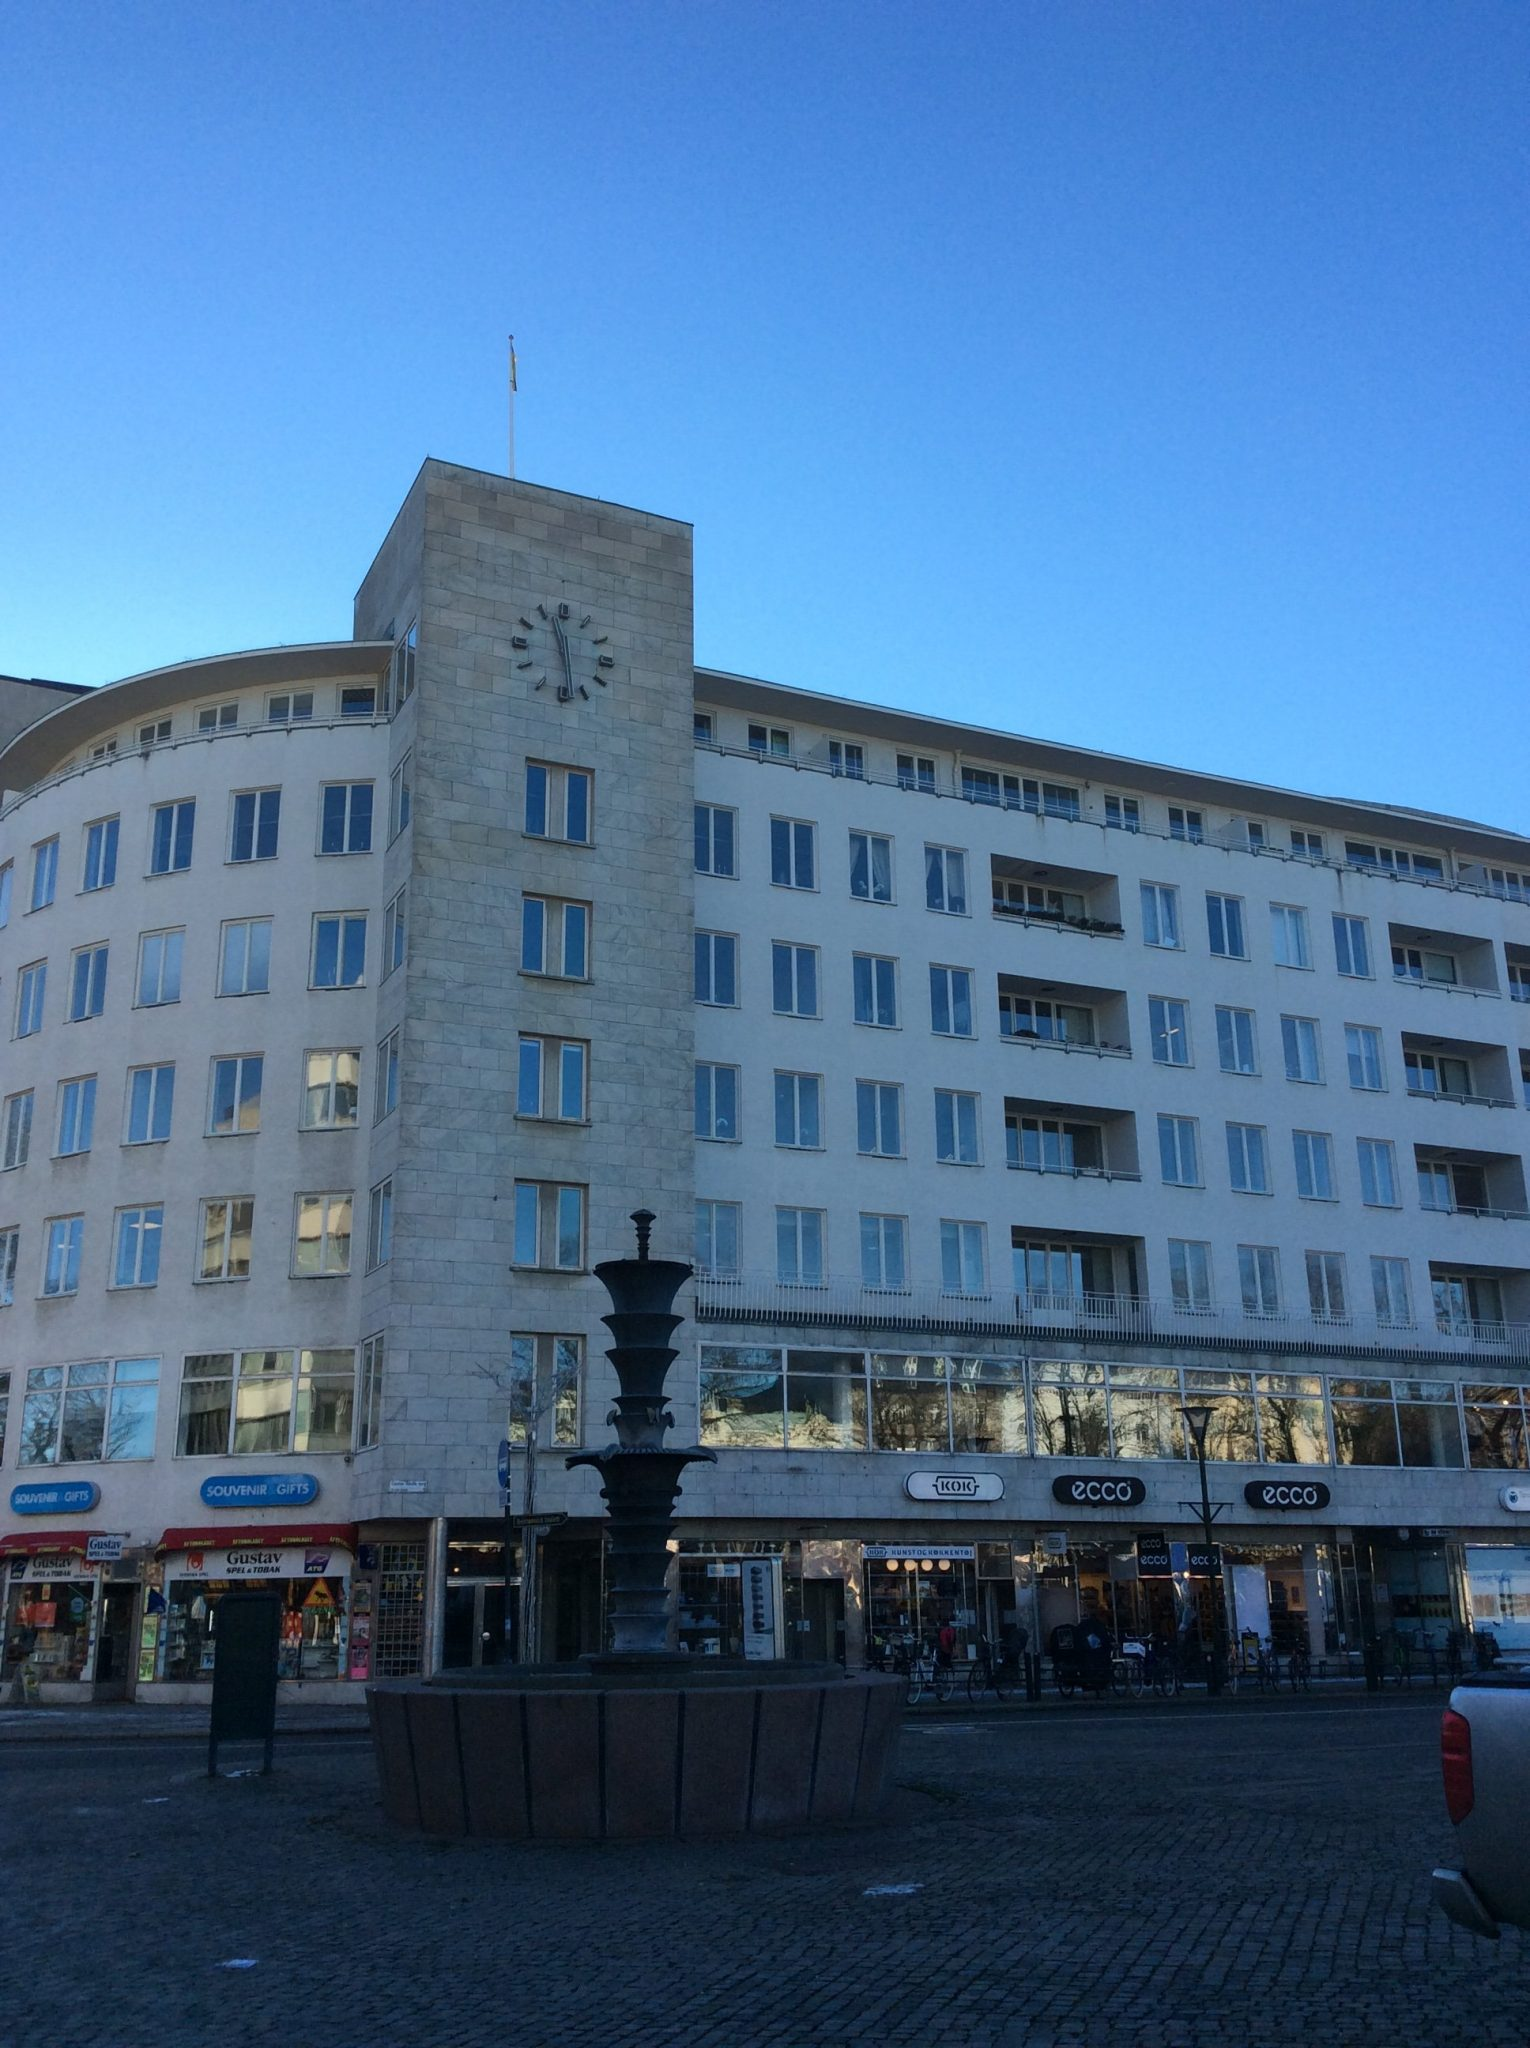 Eat in Malmö: what and where